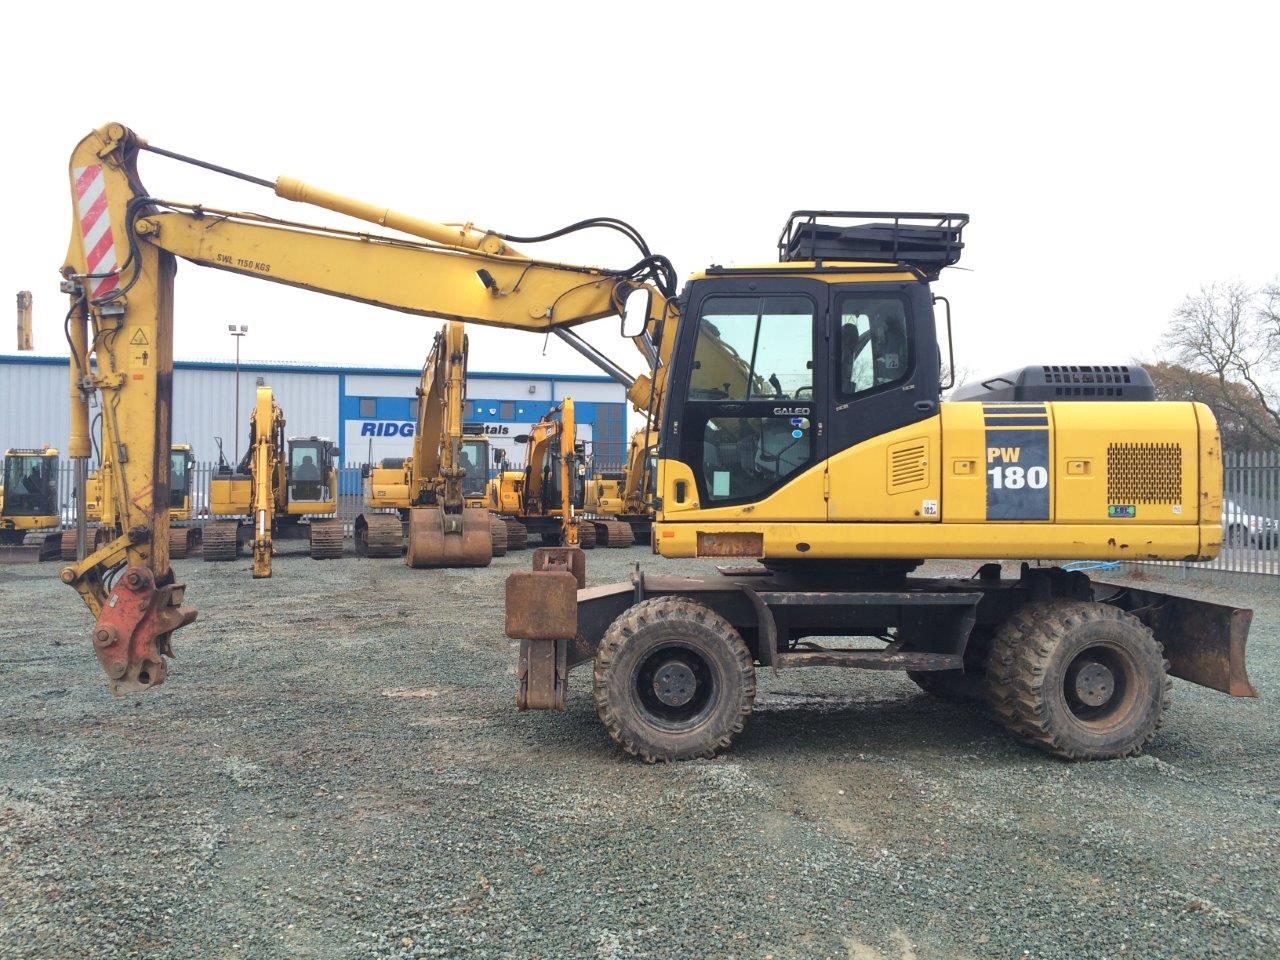 Wheeled Excavators Rubber Ducks For Sale From Ridgway